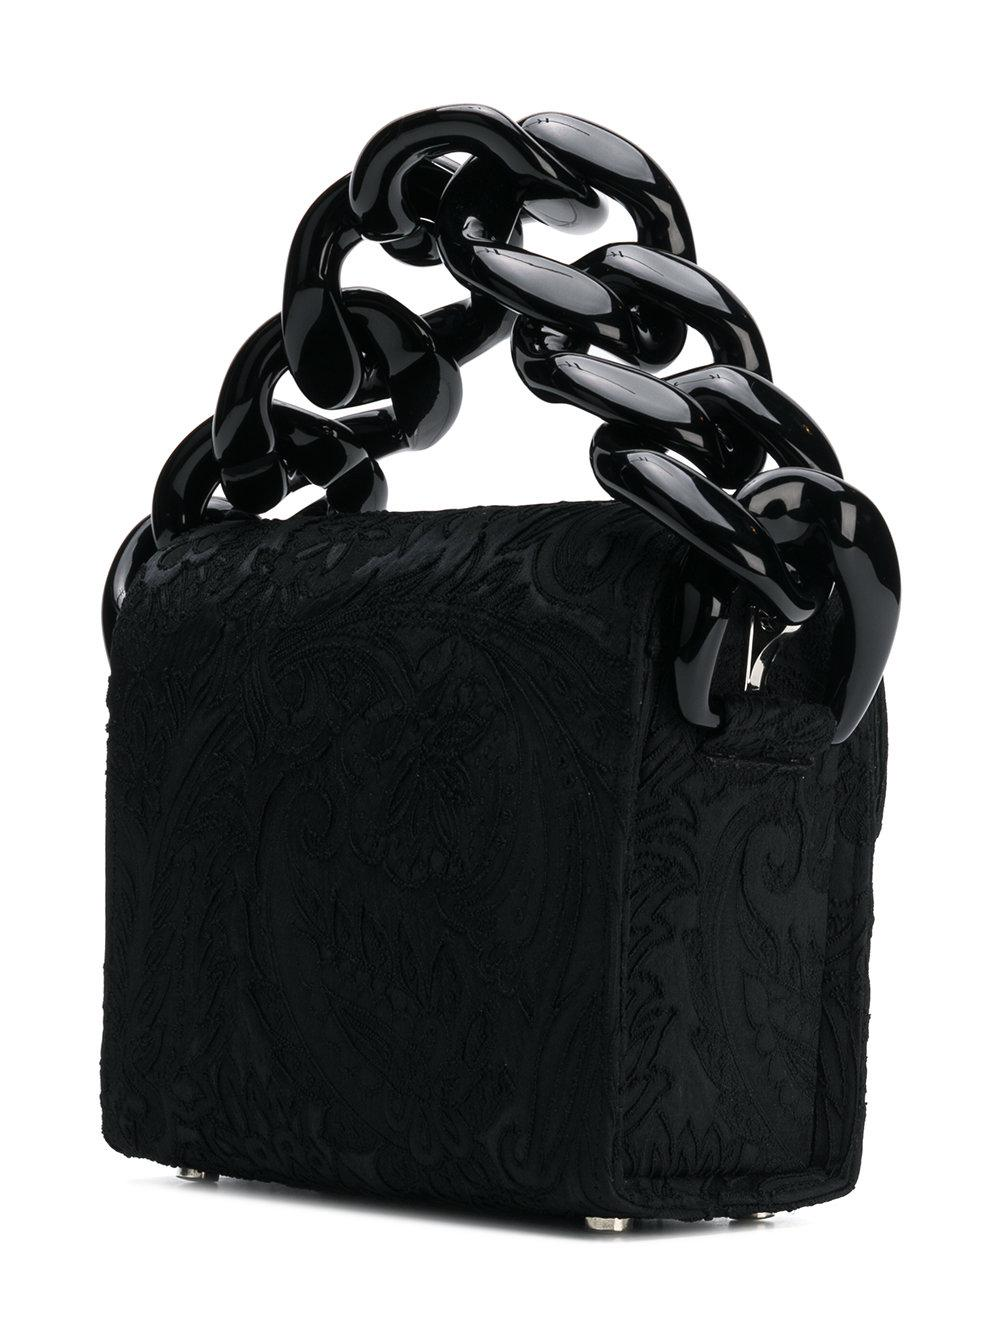 Marques'Almeida Leather Embellished Tote Bag in Black